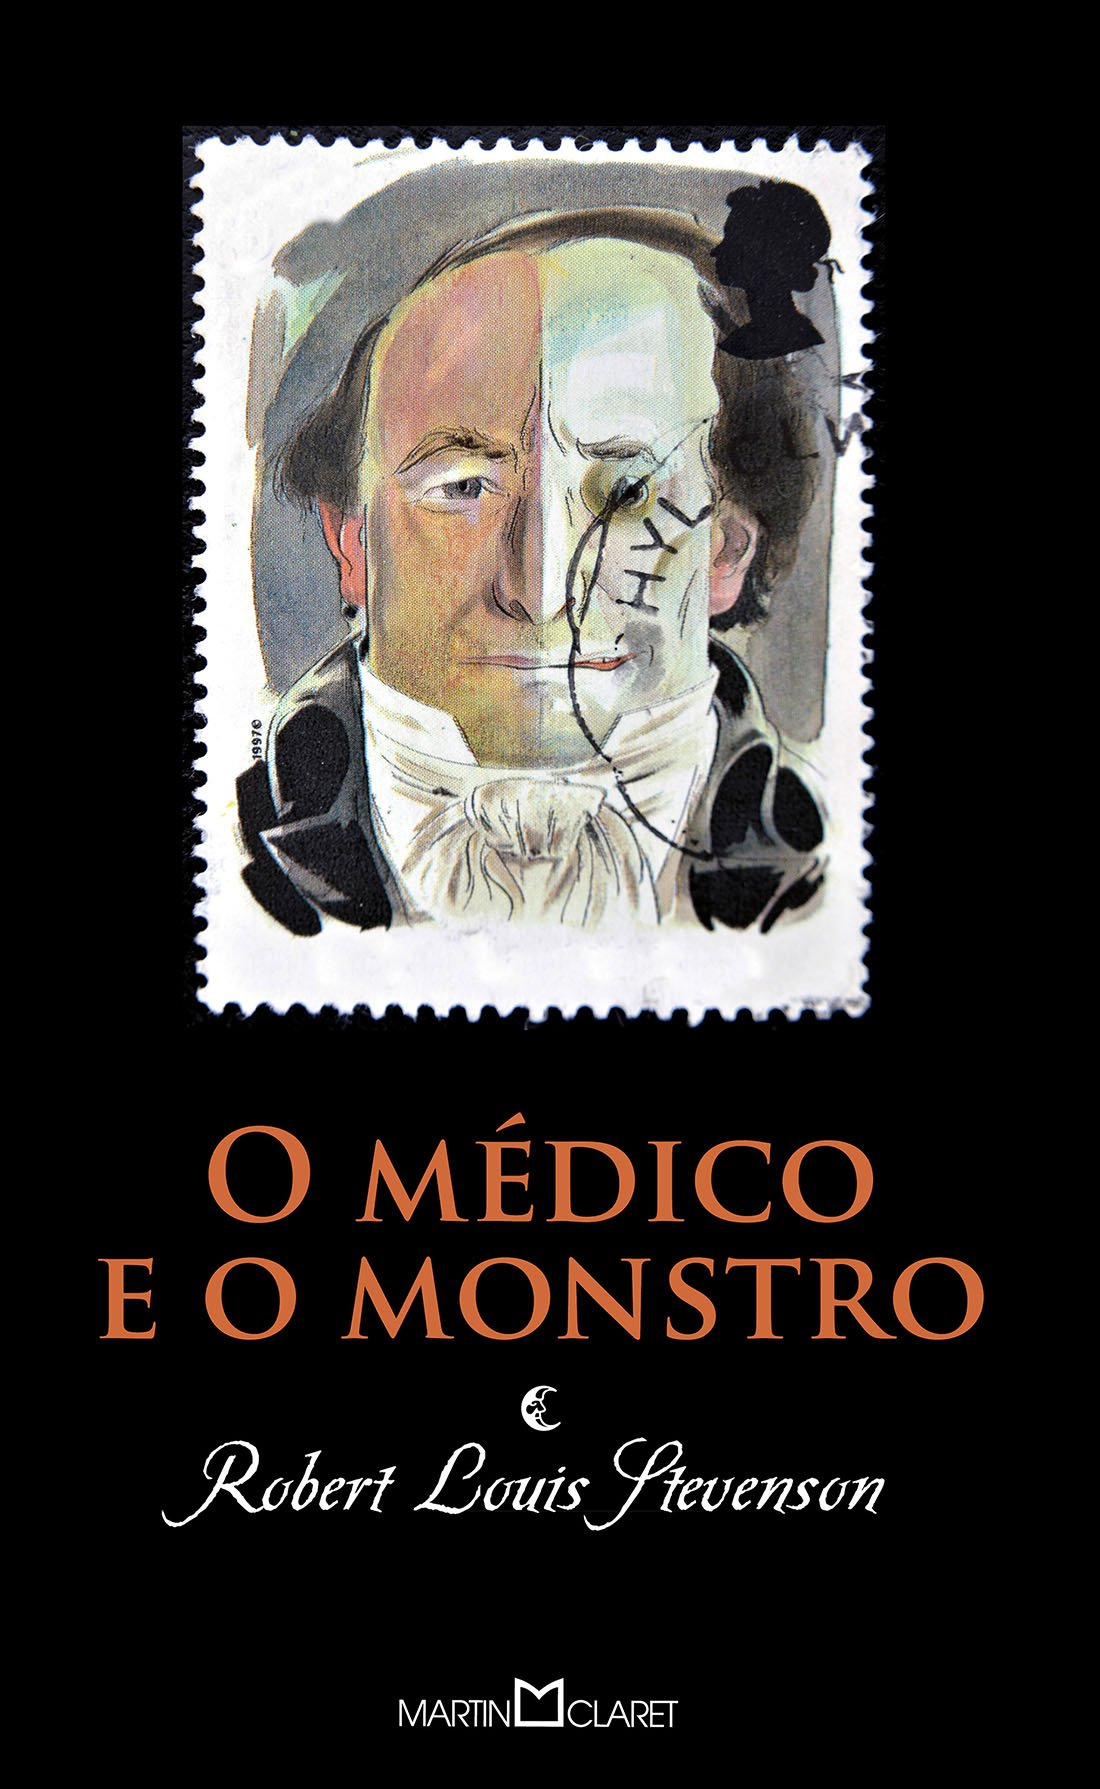 O Medico Eo Monstro Ebook